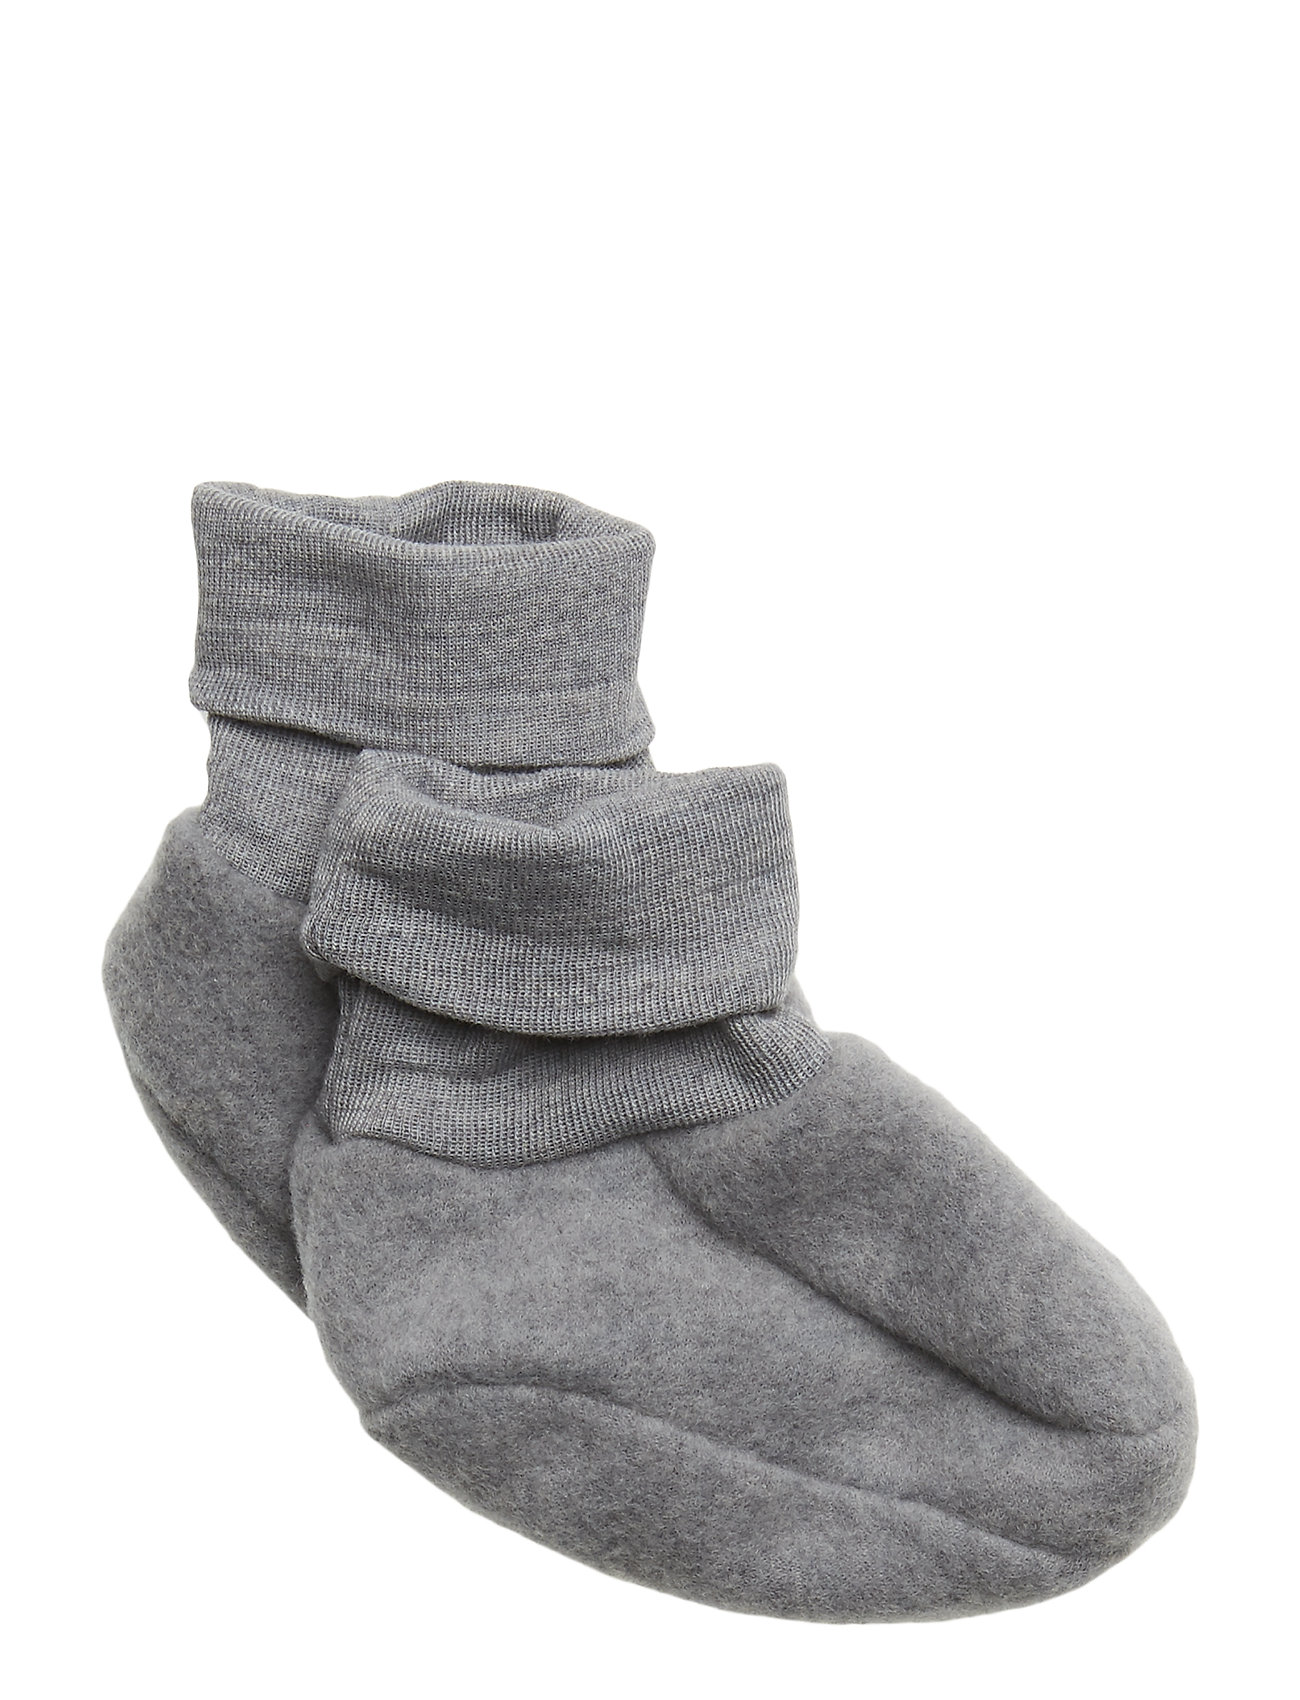 Müsli by Green Cotton Woolly fleece booties - PALE GREYMARL